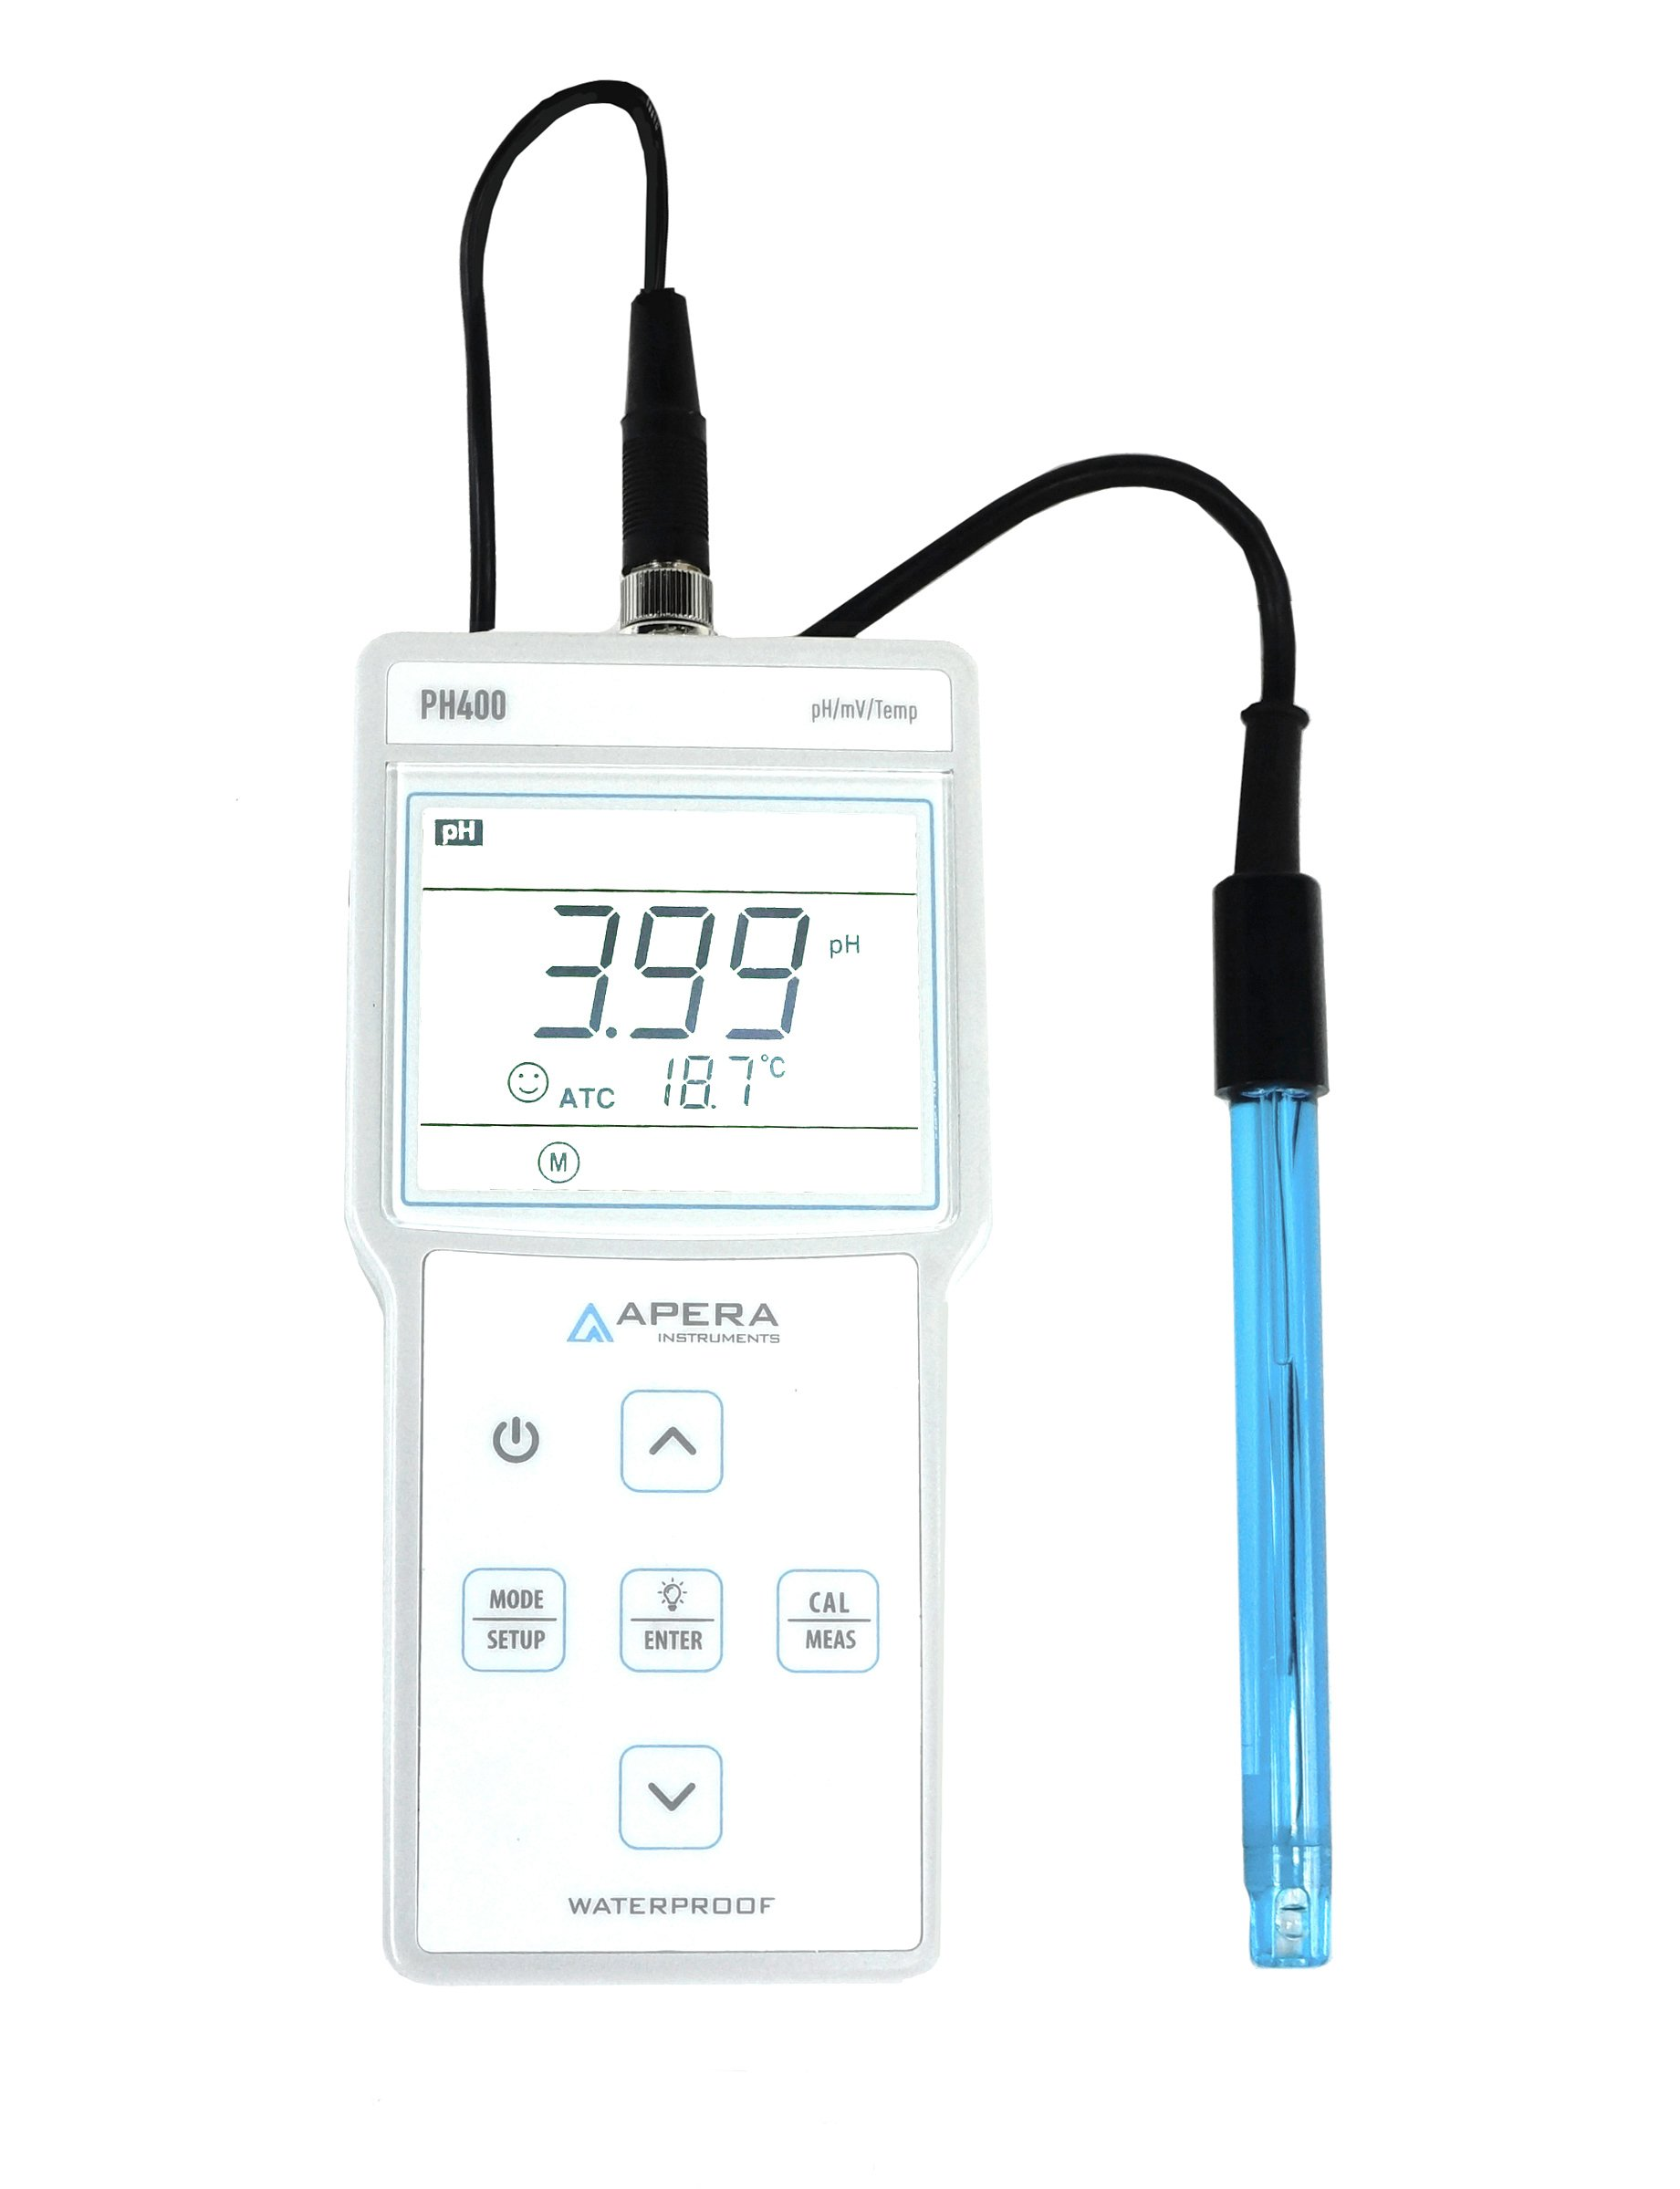 PH400 Portable pH Meter Kit, 0.01 pH Accuracy, 0-14.00 pH Measuring Range, 3ft Probe, 3-Point Auto Calibration, pre-mixed buffers included by Apera Instruments, LLC